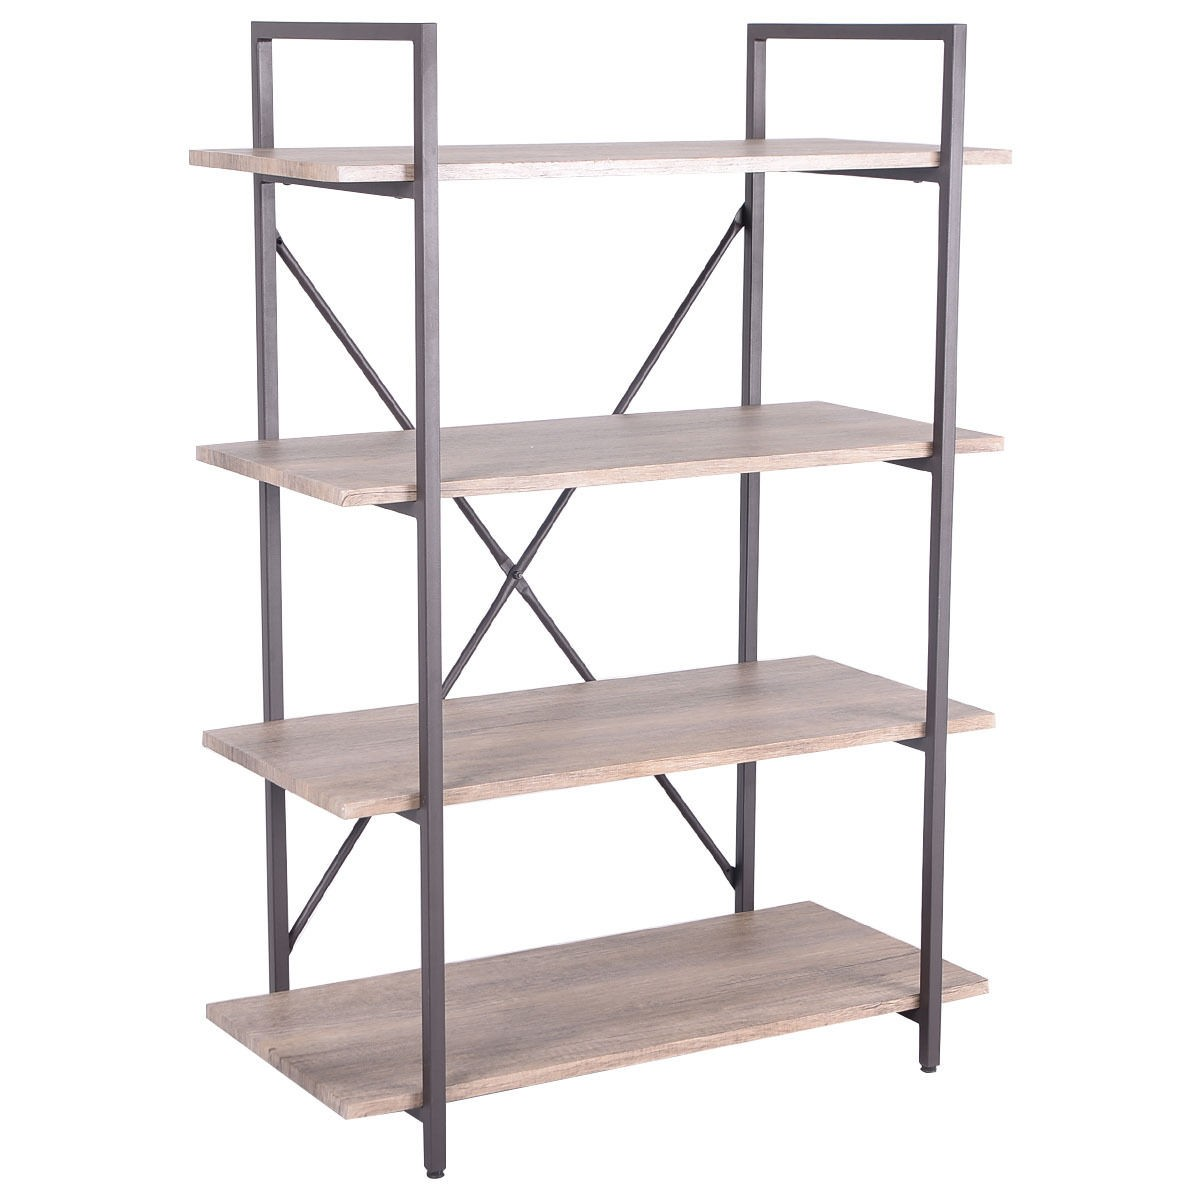 Us 4 tiers bookcase metal wood storage shelf display for Display home furniture